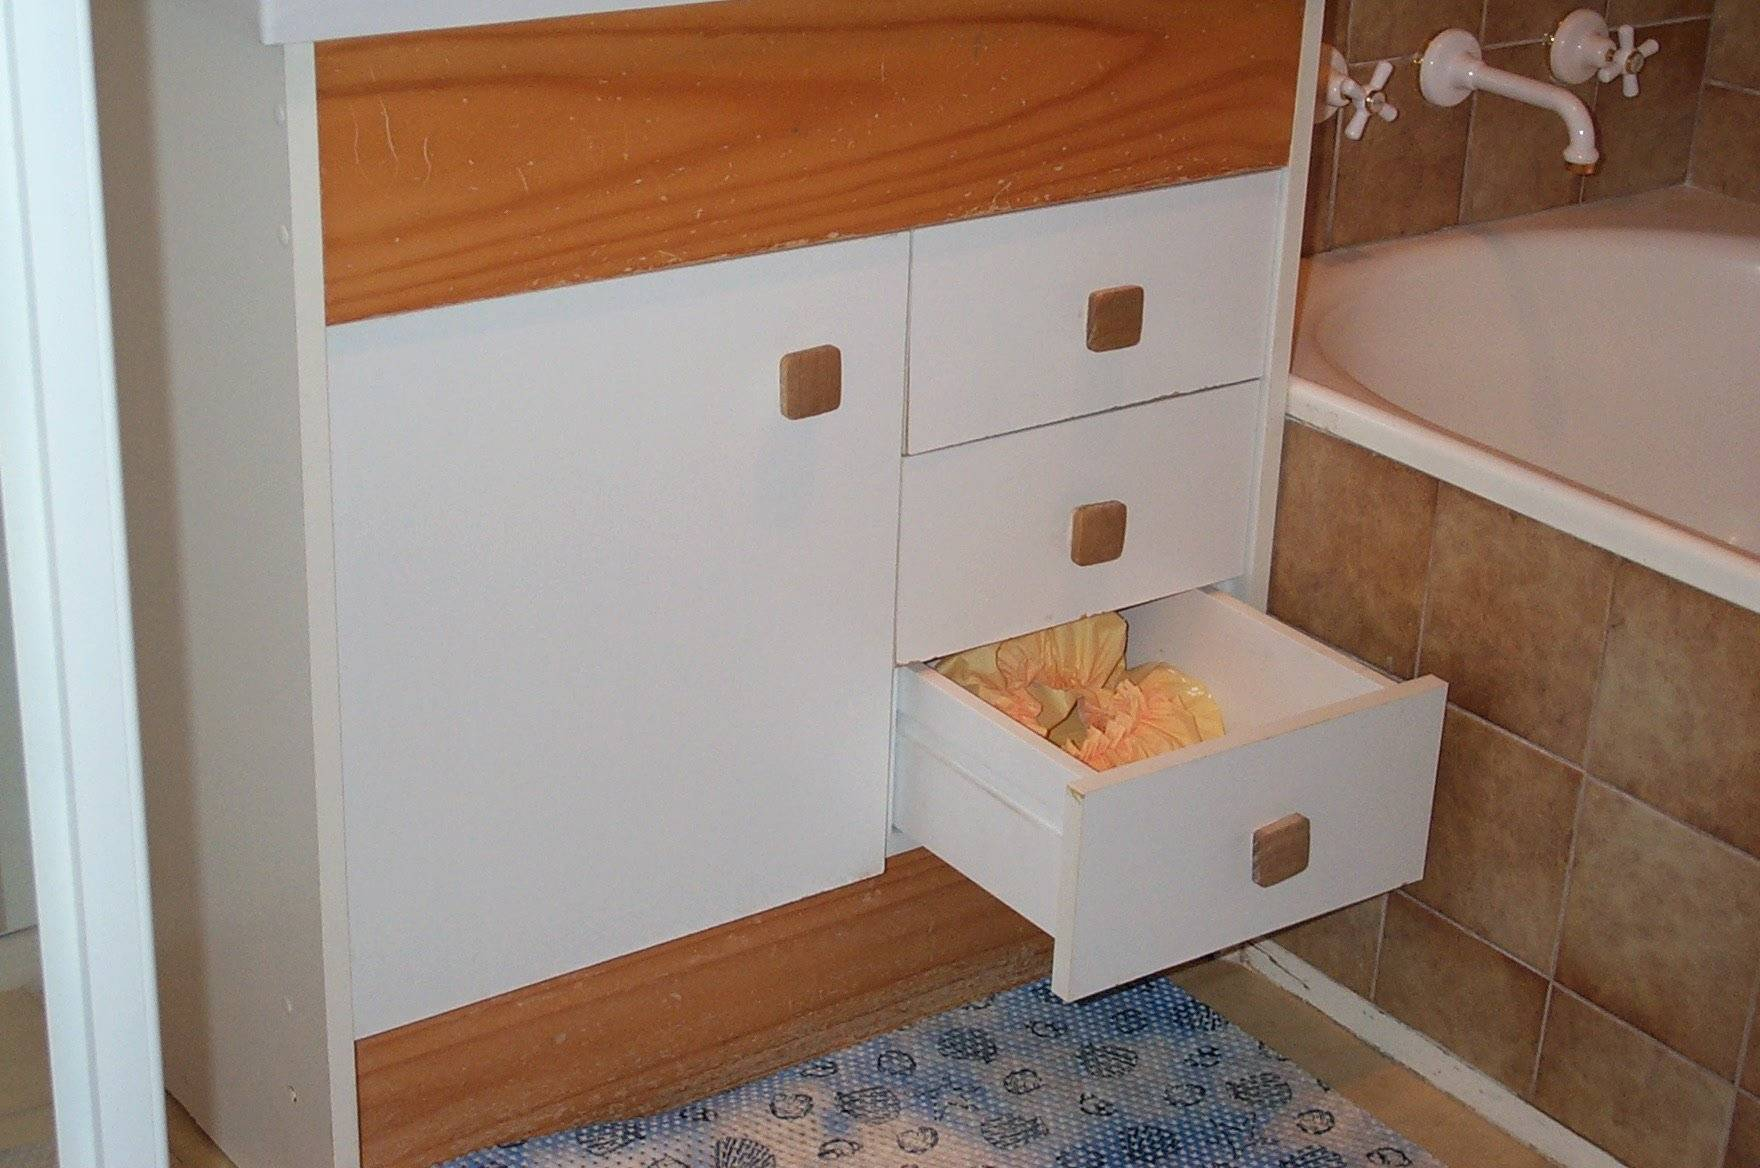 Drawers (open).jpg